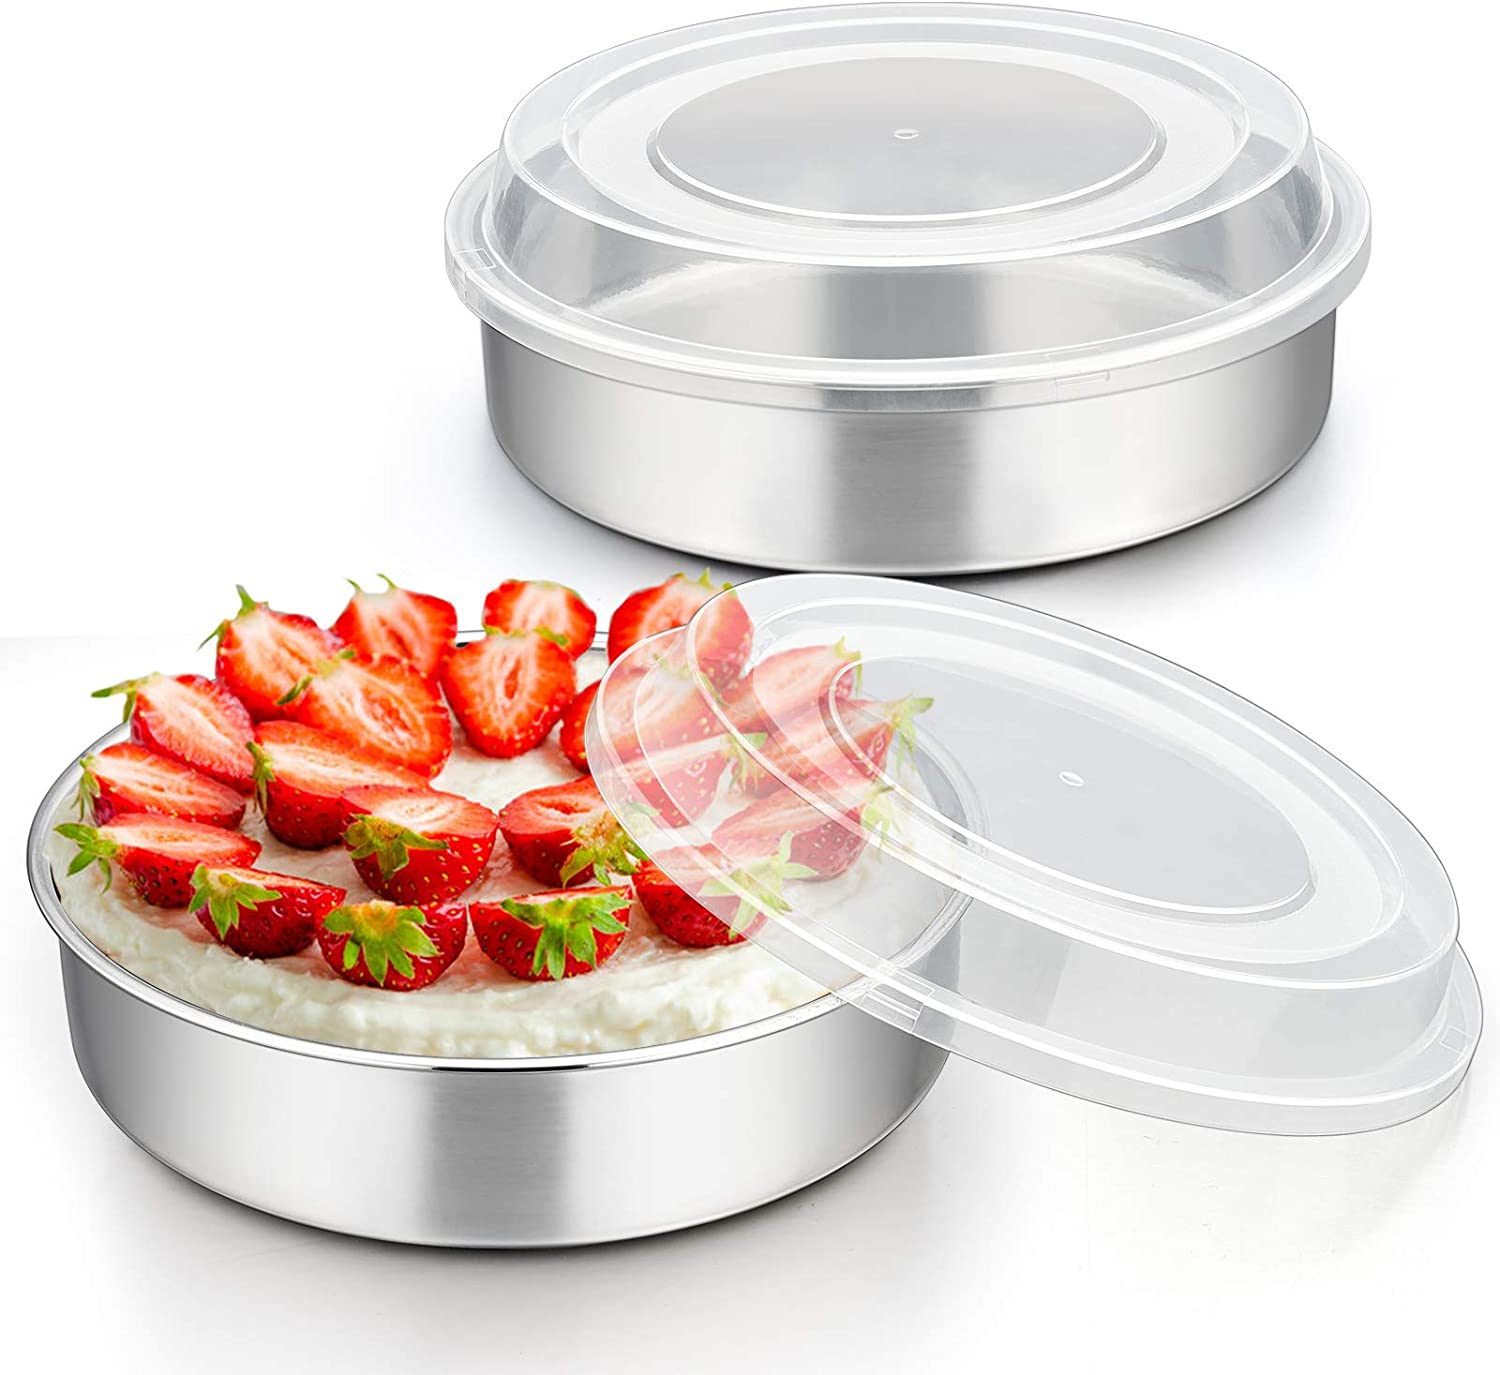 8 Inch Cake Pan with lid, E-far Stainless Steel Round Baking Cake Tins Bakeware Set of 2, Non-toxic & Mirror Finished, Easy Release & Dishwasher Safe - 4 Pieces(2 Pans + 2 Lids)